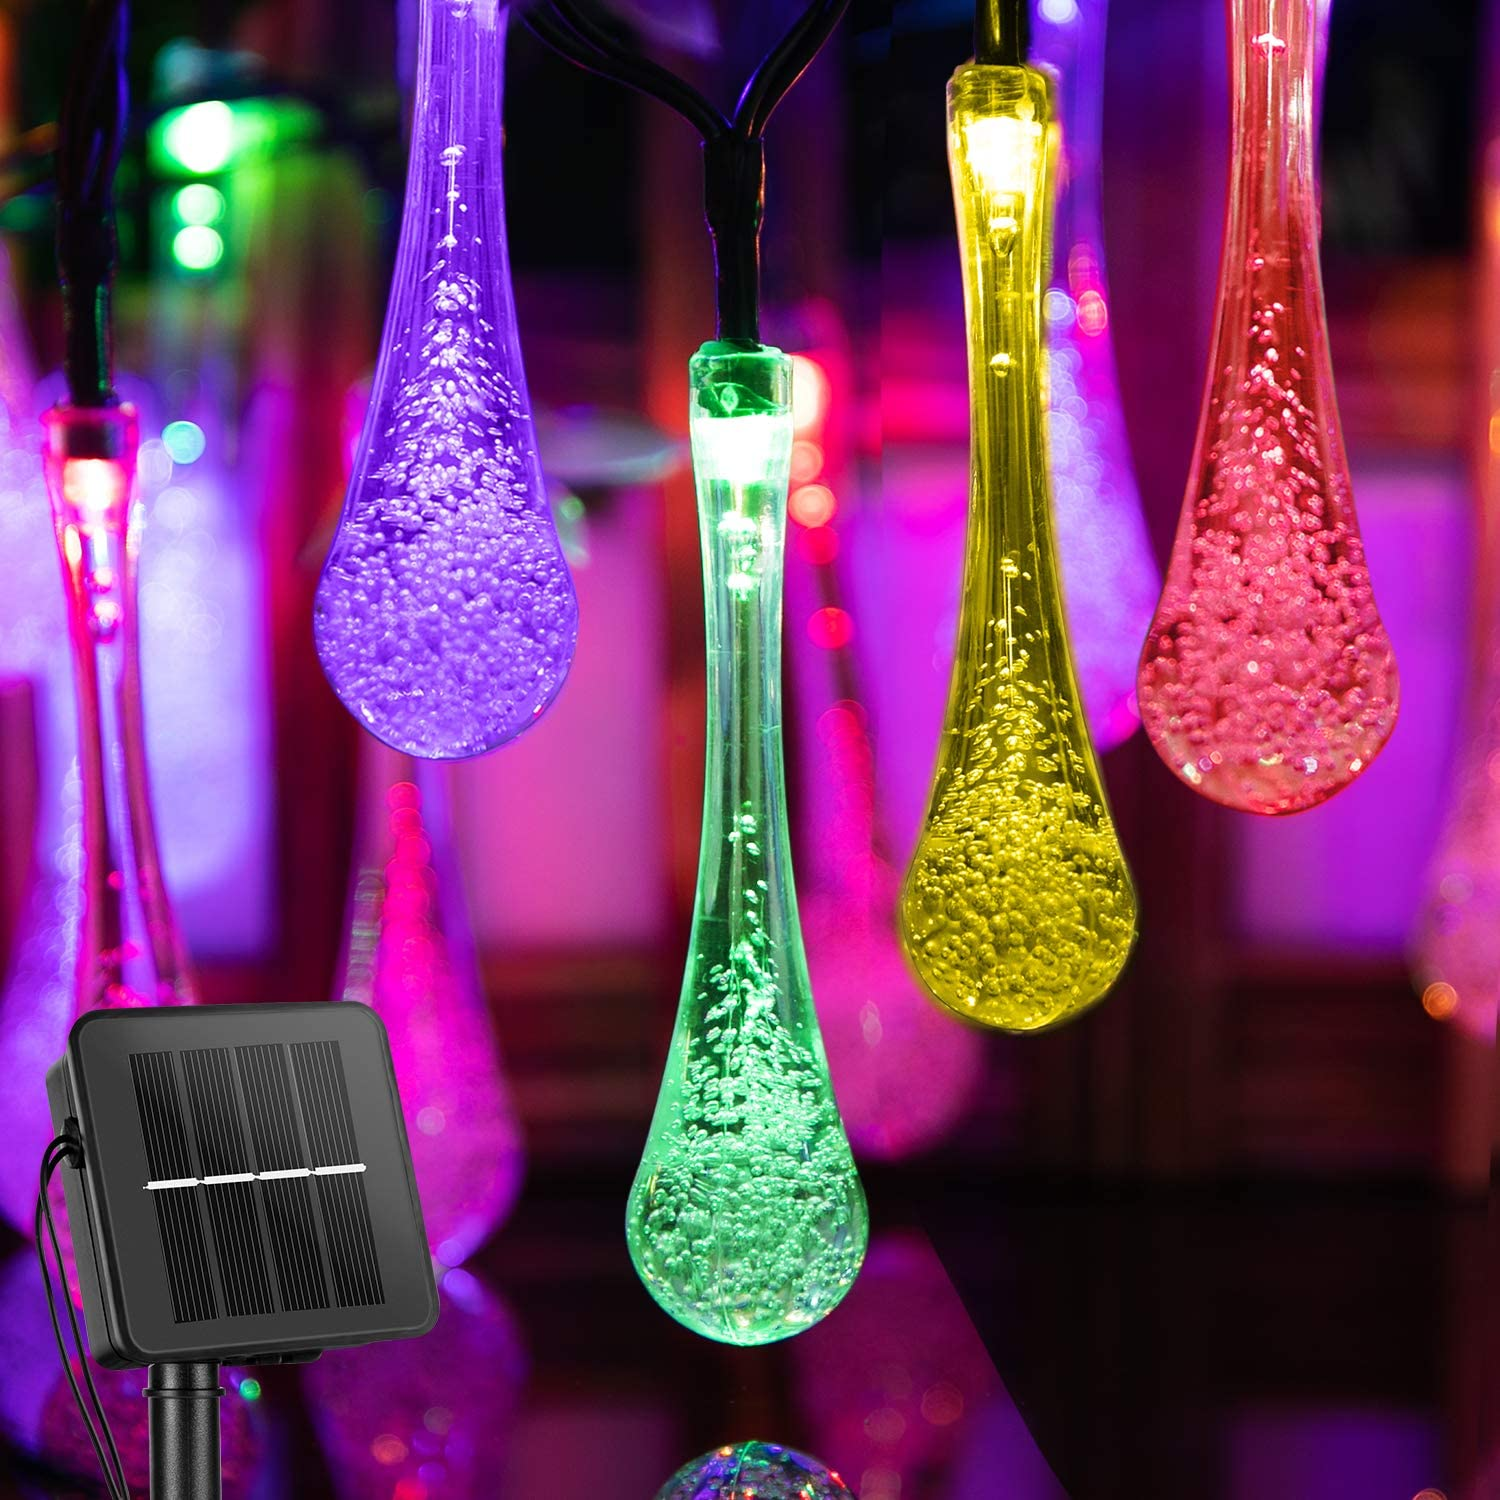 Outdoor Solar String Lights 25.7 Feet 40 Led Water Drop Solar Powered Lights with 8 Modes, Waterproof Fairy Crystal Lights for Patio Garden Yard Tree Wedding Party Decor (Multicolored)